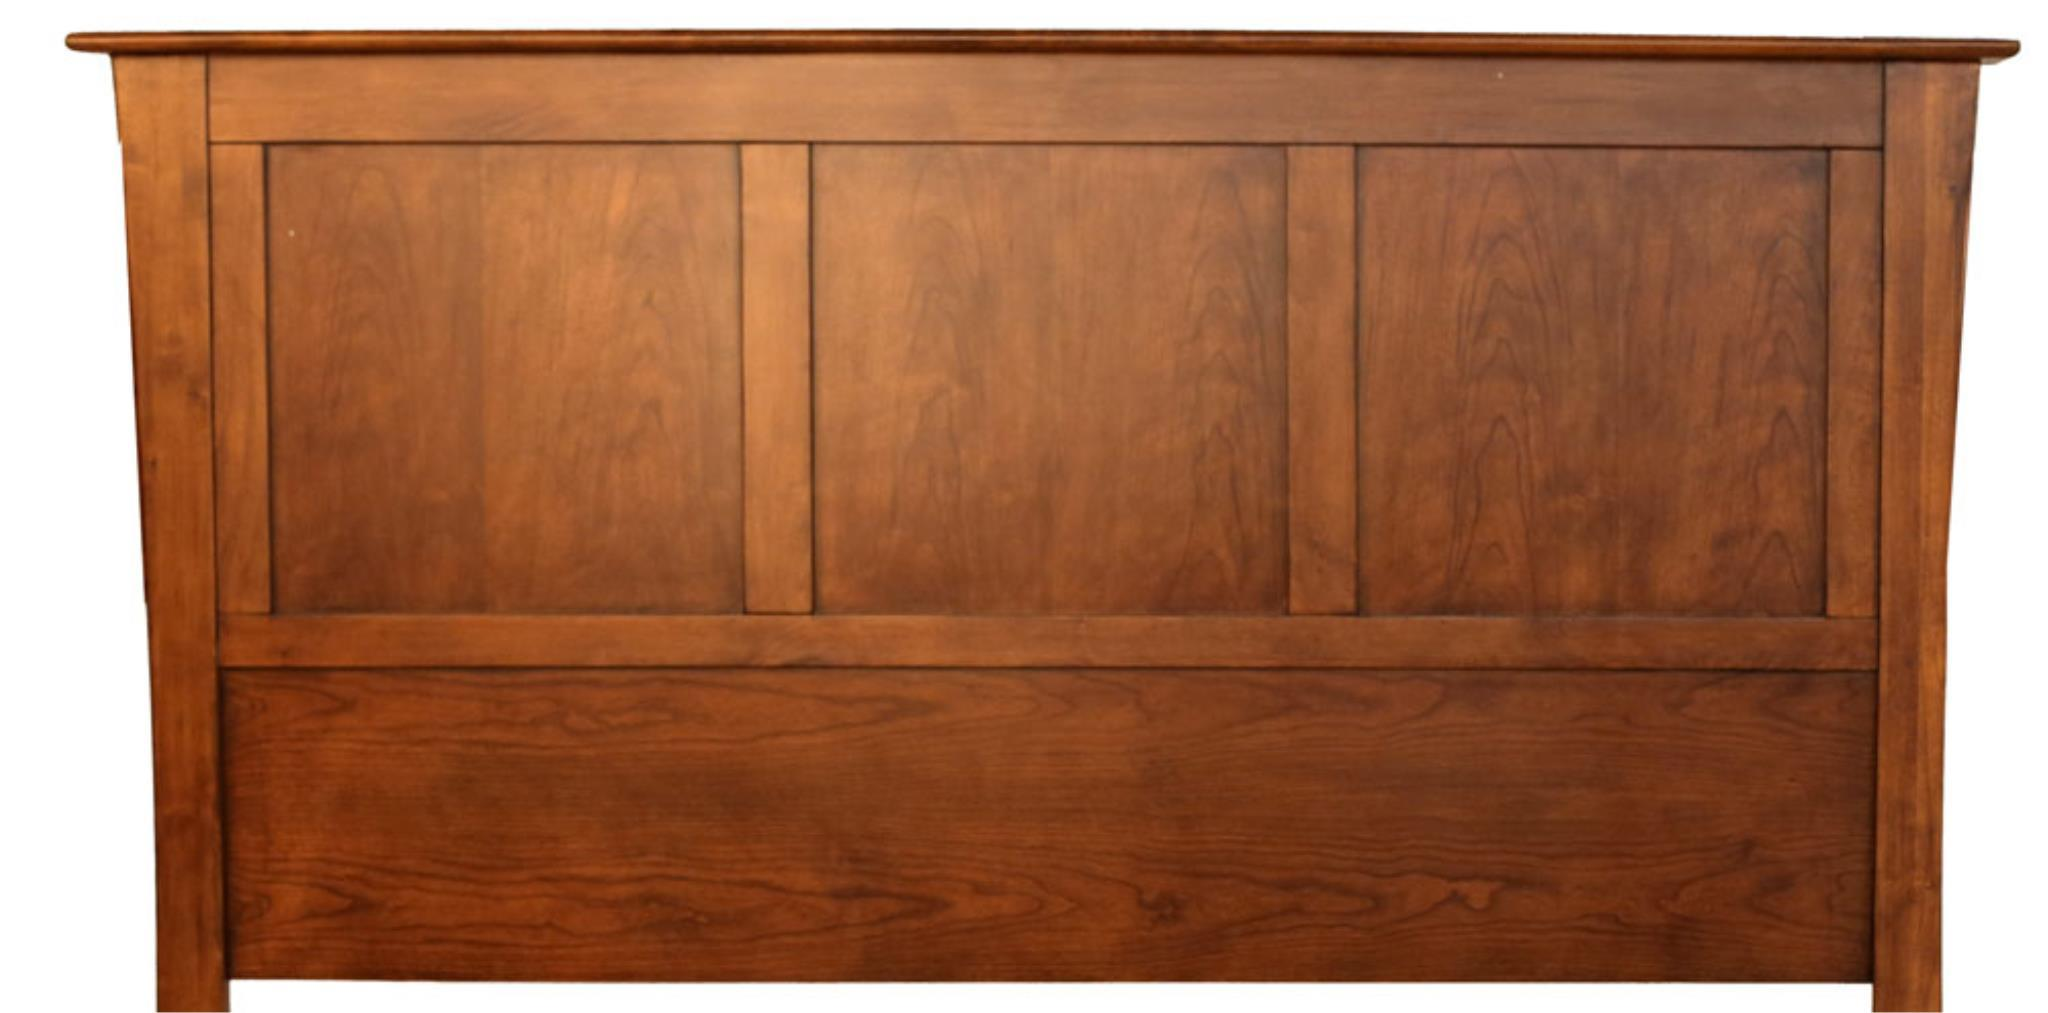 AAmerica Grant Park King Panel Headboard - Item Number: GPKPE513H